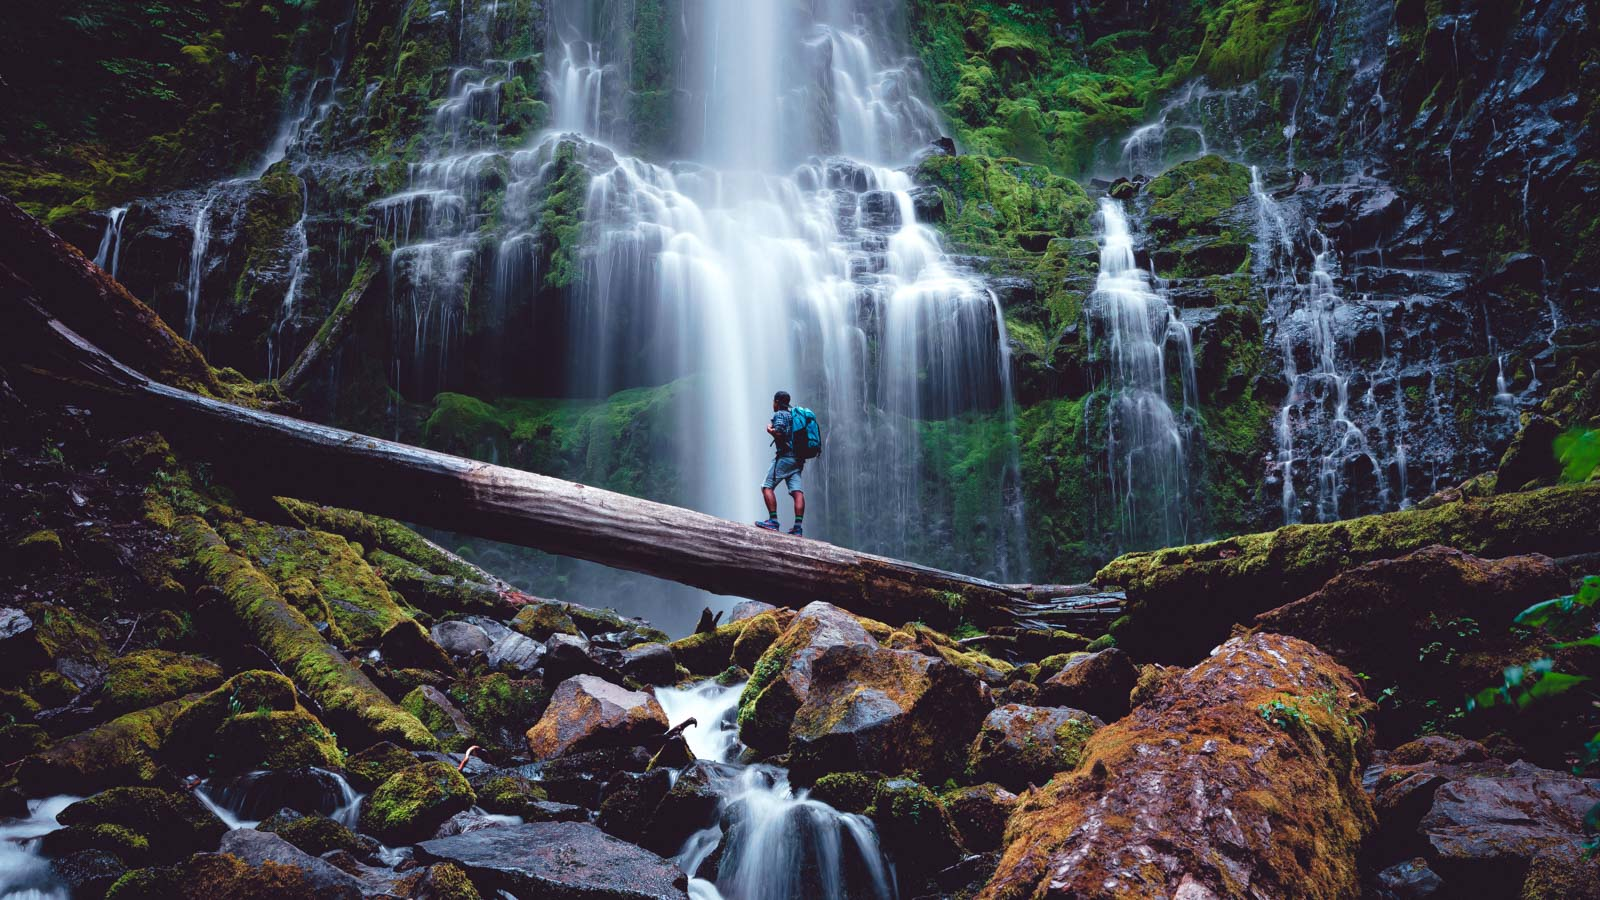 Proxy Falls is one of Oregon's best hikes